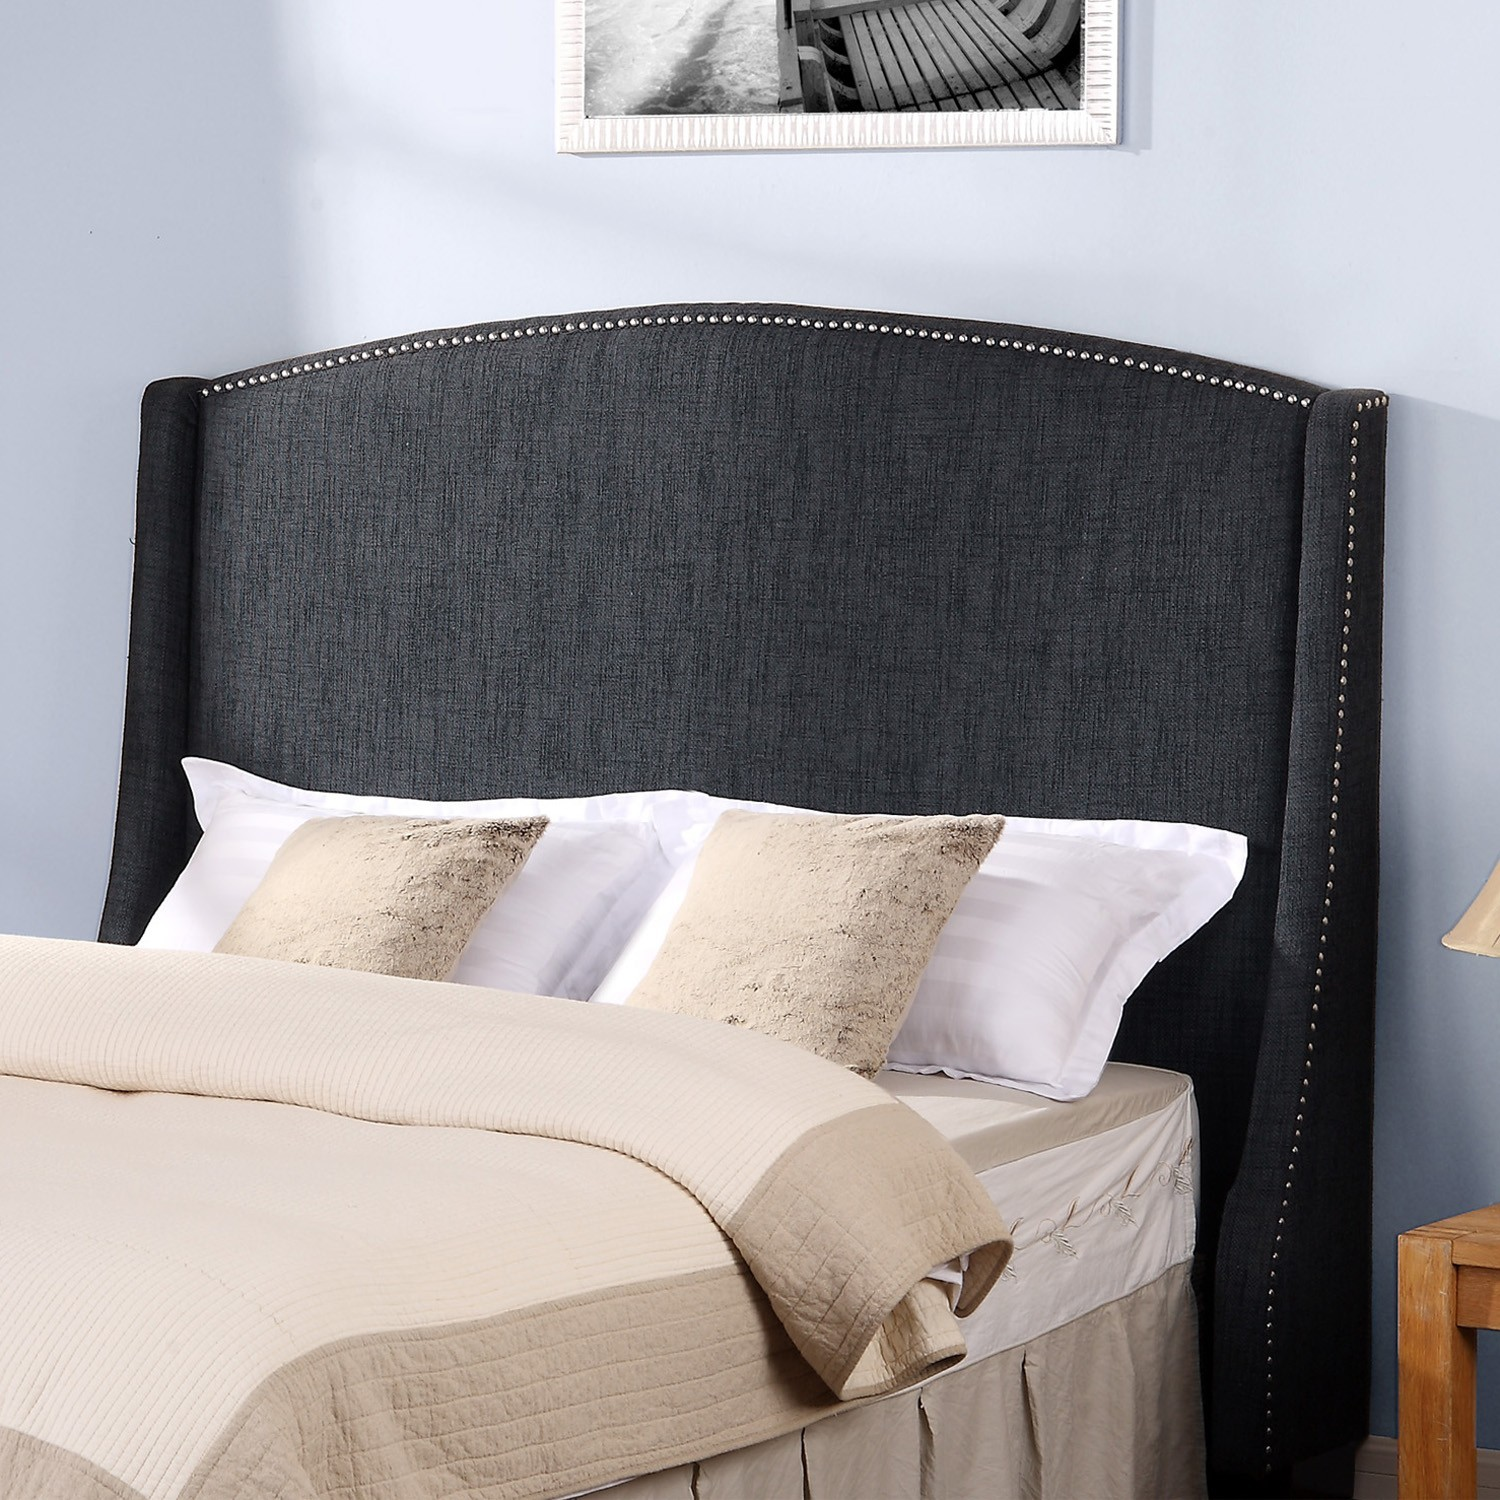 Upholstered Headboards In Black Matched With Mocca Bedding Before The White Wall With Picture For Bedroom Decor Ideas